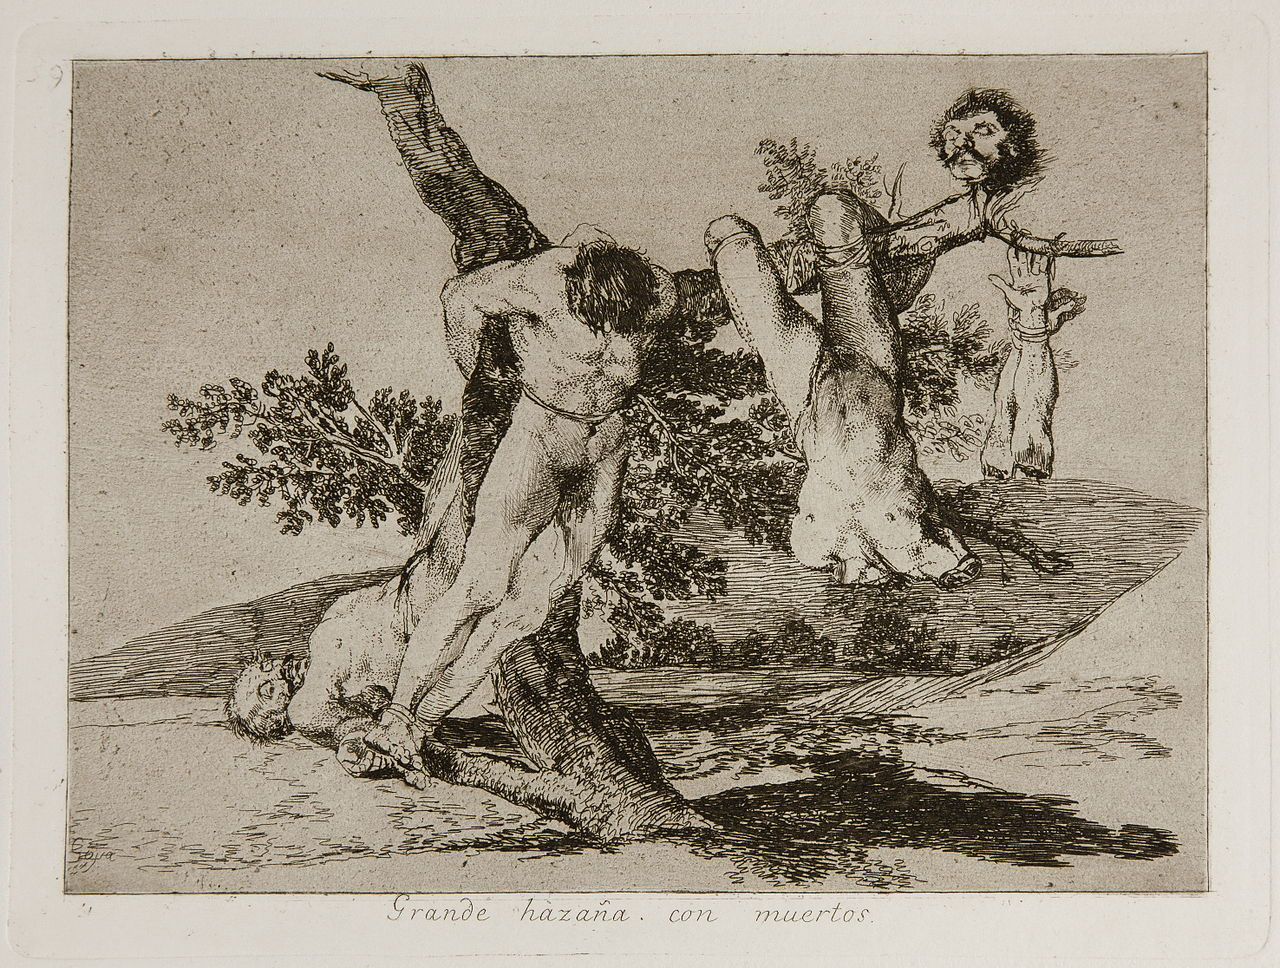 """Francisco Goya, """"Great deeds! Against the dead!"""" (1810s). Source: Wikimedia Commons."""